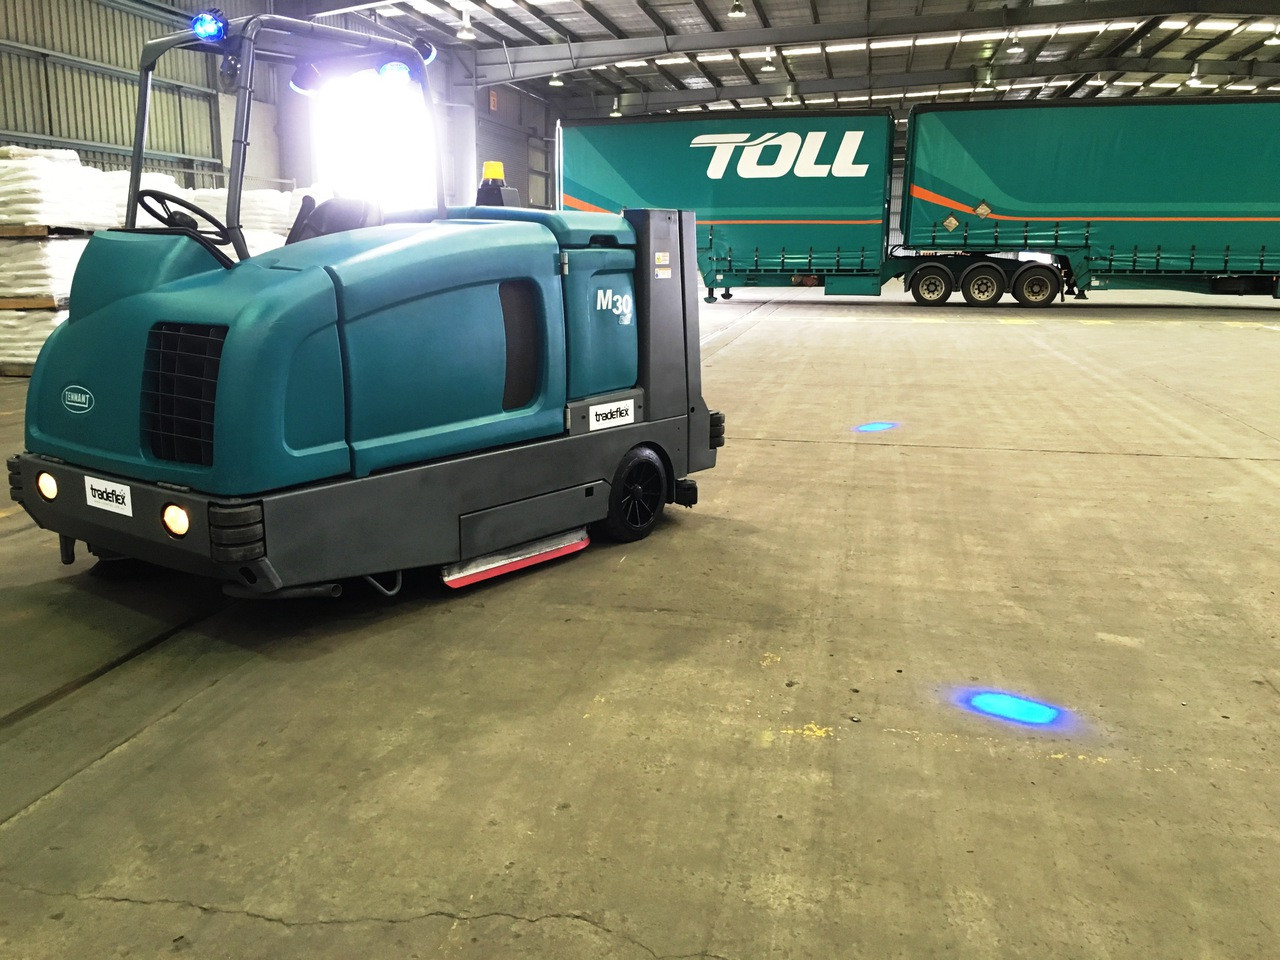 Our Blue or Red Forklift Spot light can be used in many applications. Tradeflex supplied Toll with their warehouse sweepers and fitted our Blue Forklift Warning Light. Its visual and it works. Available in Blue Red and Green